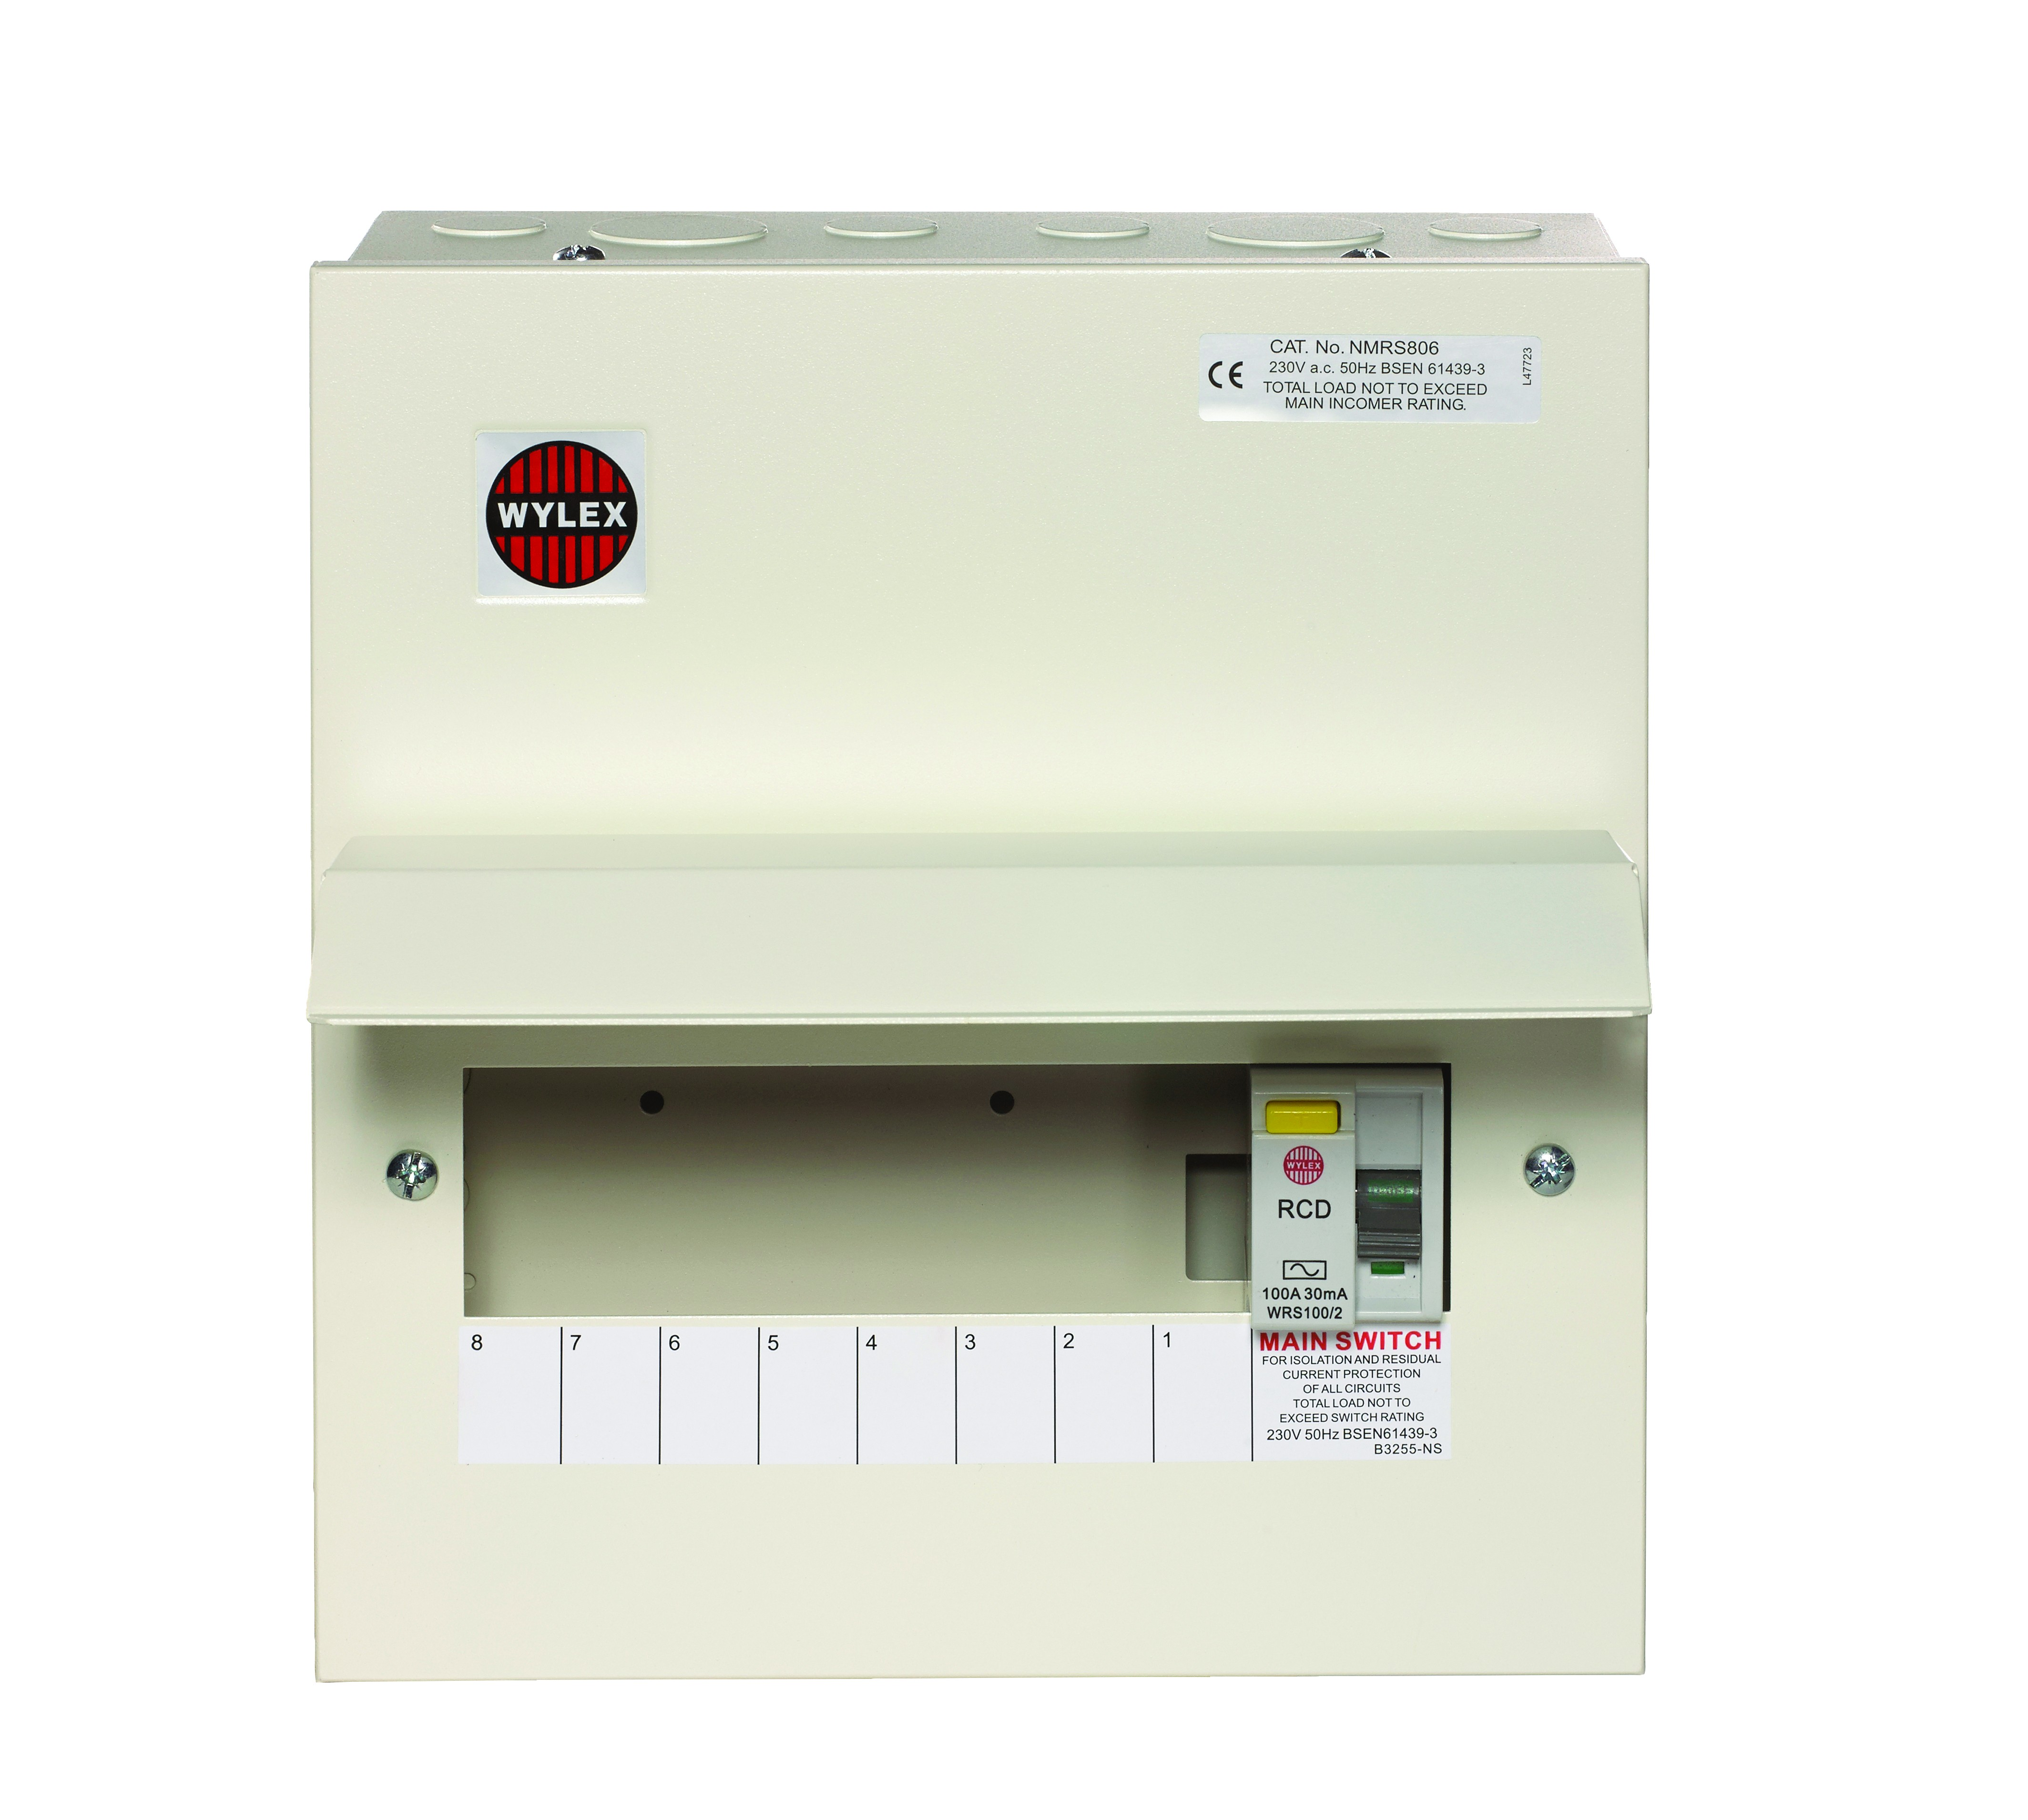 Wylex Nmrs806 8 Way Amendment 3 Metal Consumer Unit W 100a 30ma Rcd 2 Printer Switch With Incomer